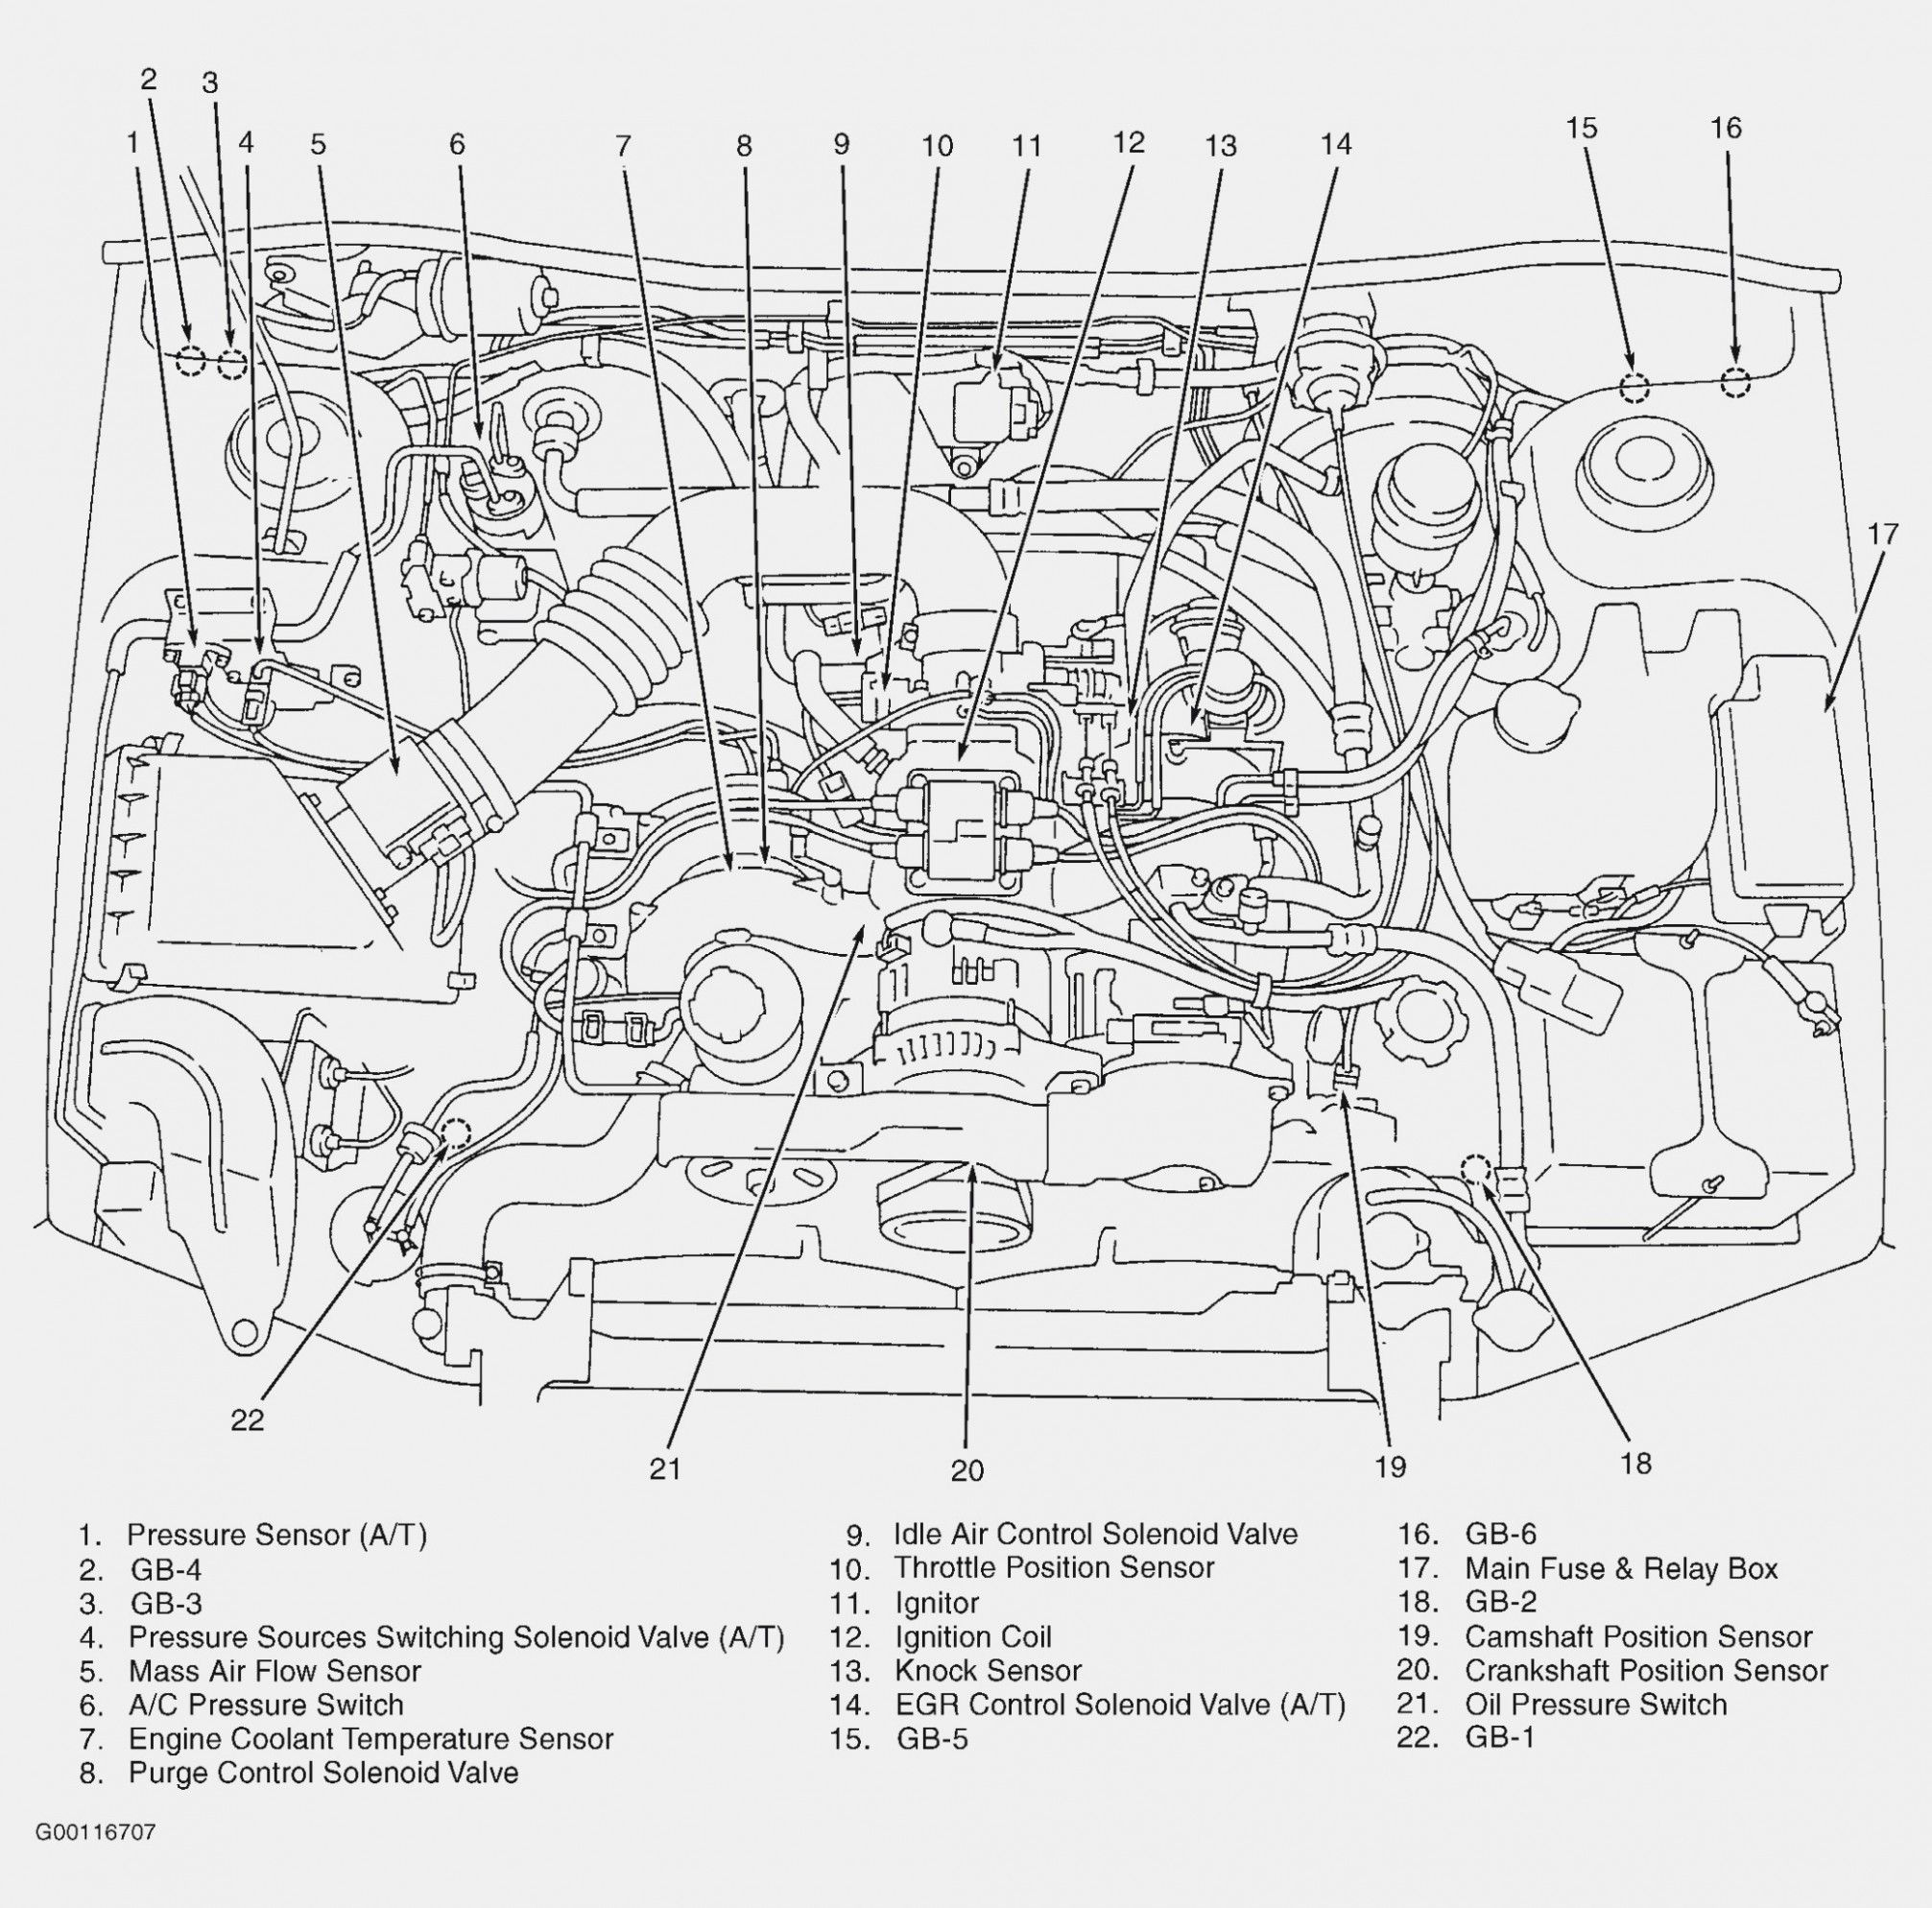 [DIAGRAM_38EU]  5 Subaru Outback Engine Diagram in 2020 | Subaru legacy, Subaru outback,  Subaru | 2015 Wrx Engine Diagram |  | Pinterest